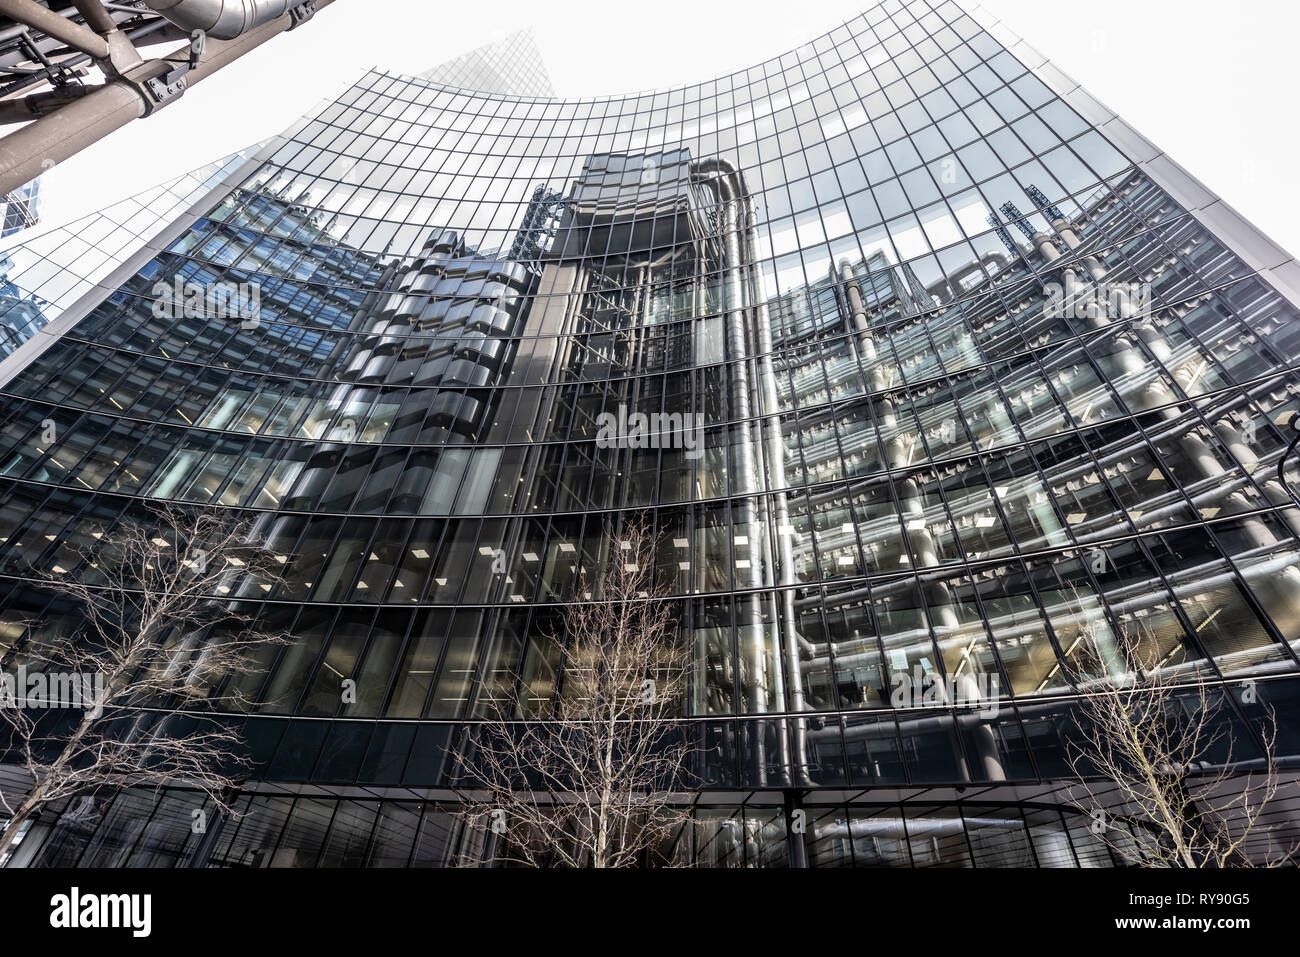 Mirror, mirror on the wall: the refinery-like Lloyds building reflected in the glass curtainwall of the Willis Building on Lime Street - Stock Image